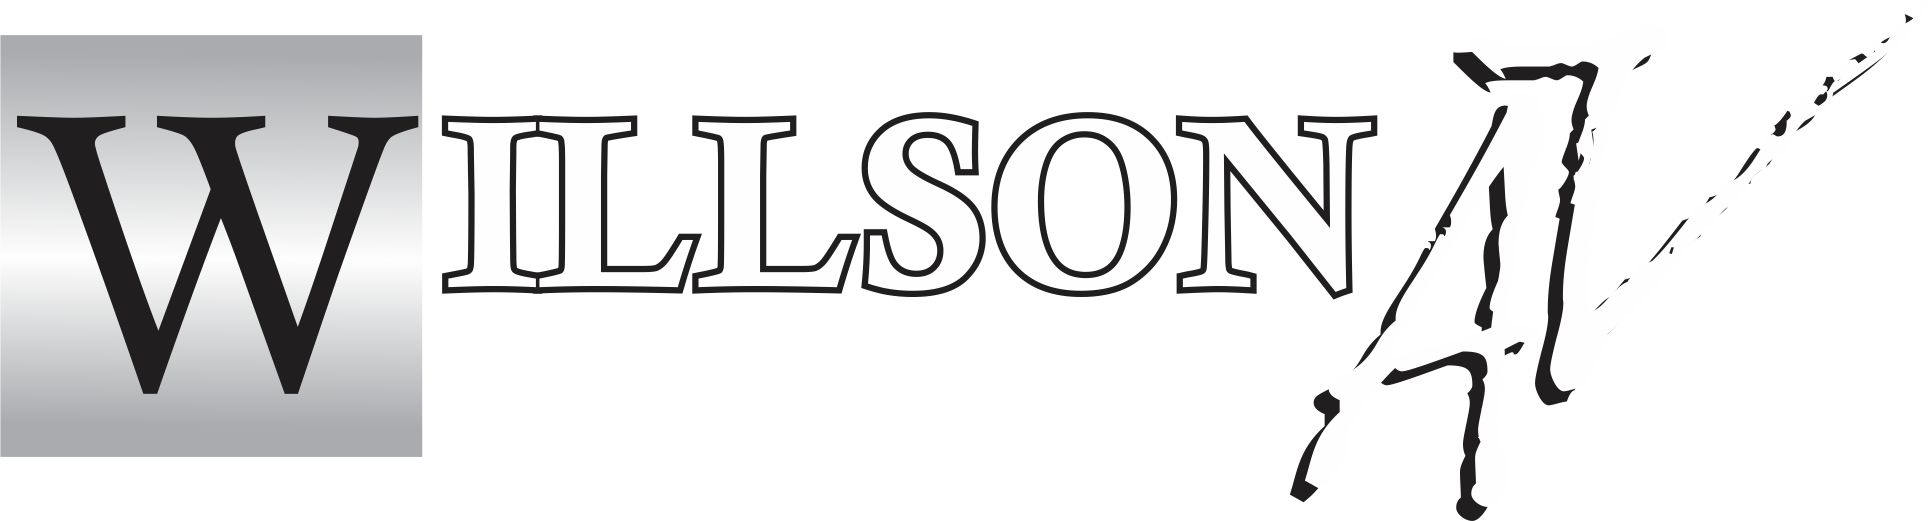 willson-av-logo